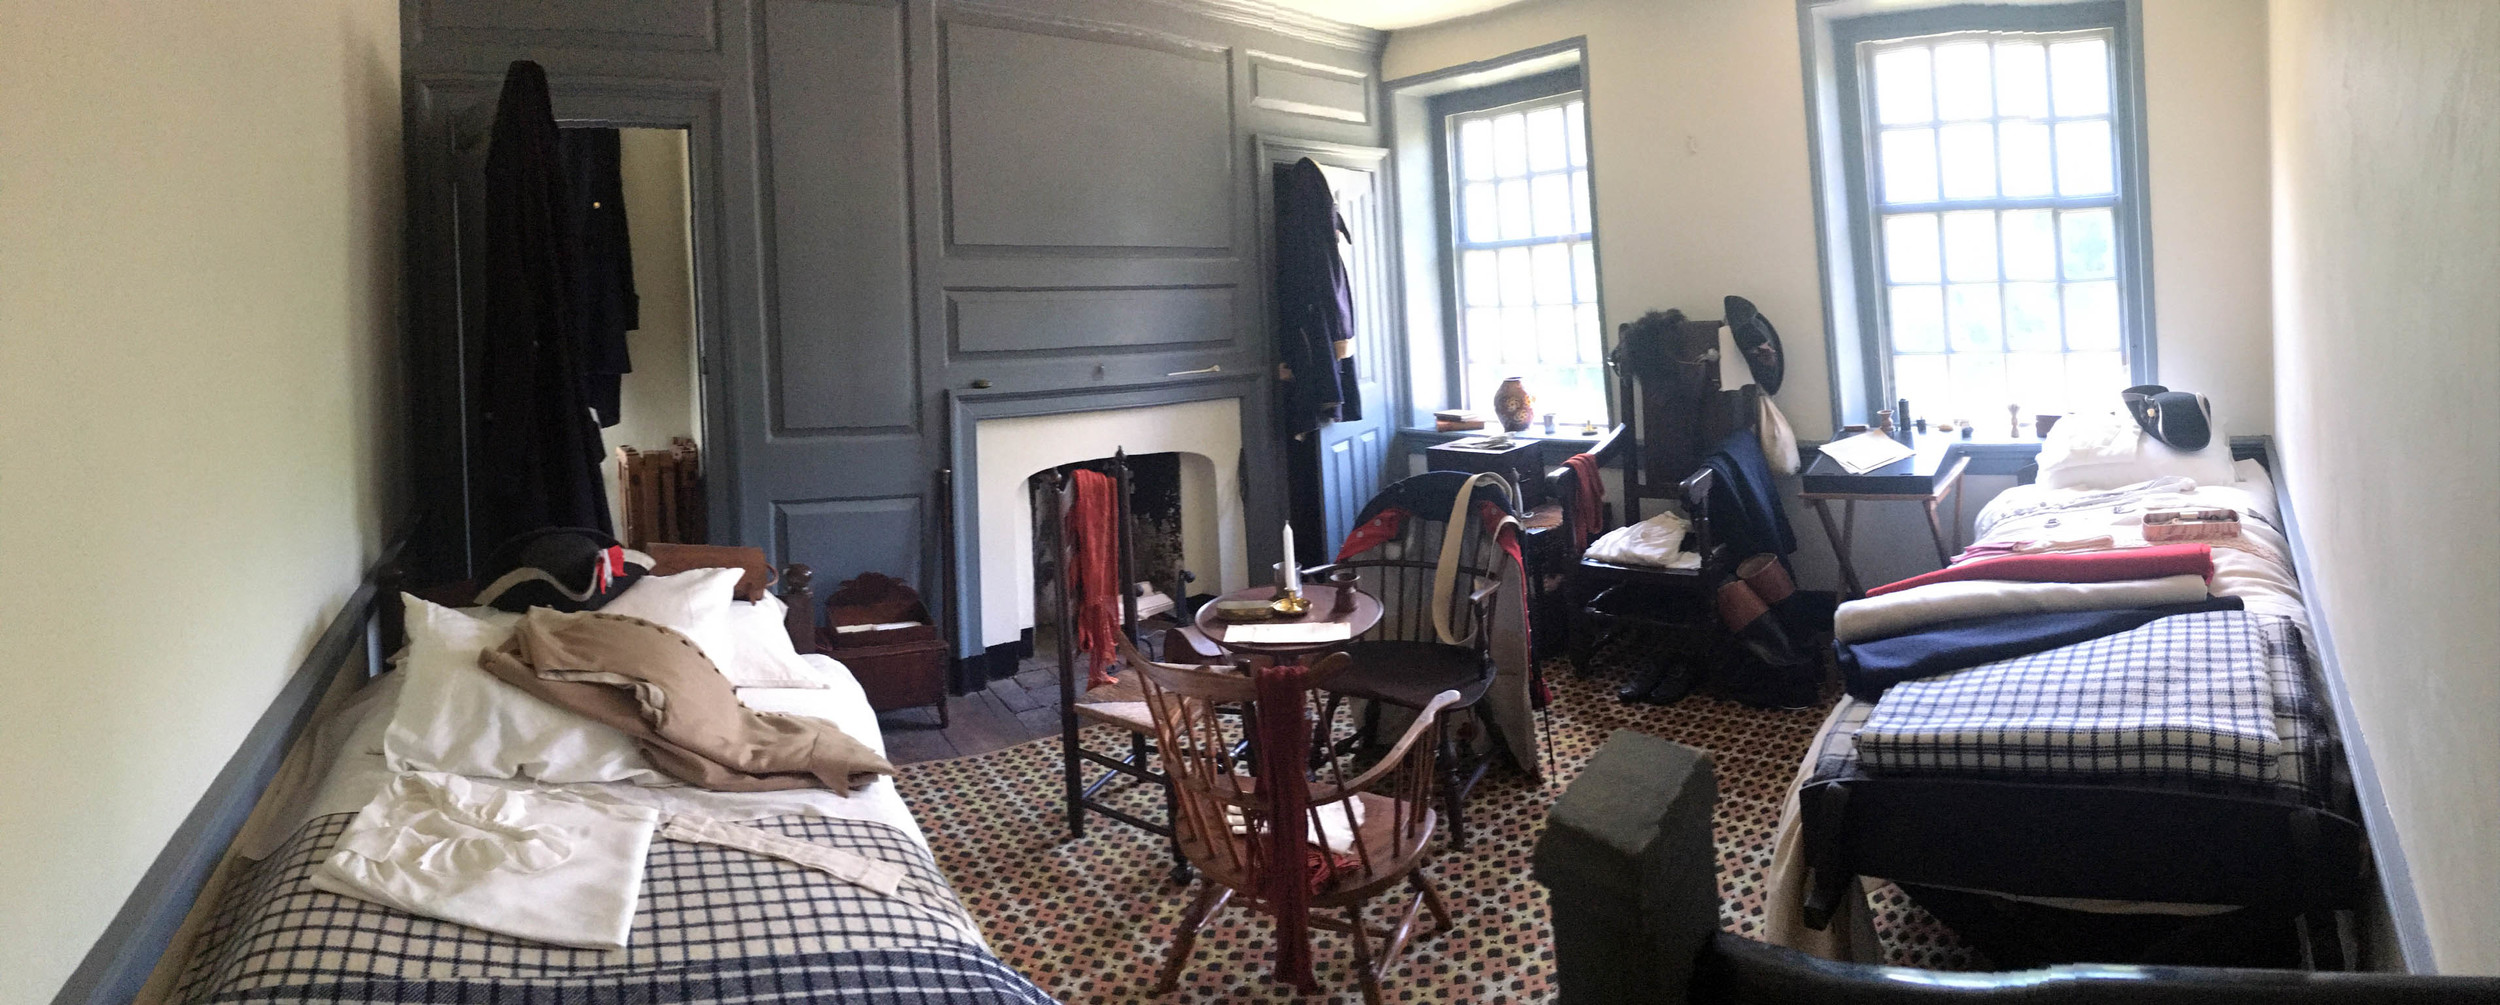 Bedroom for Hamilton and other officers, on the second floor of Washington's headquarters.